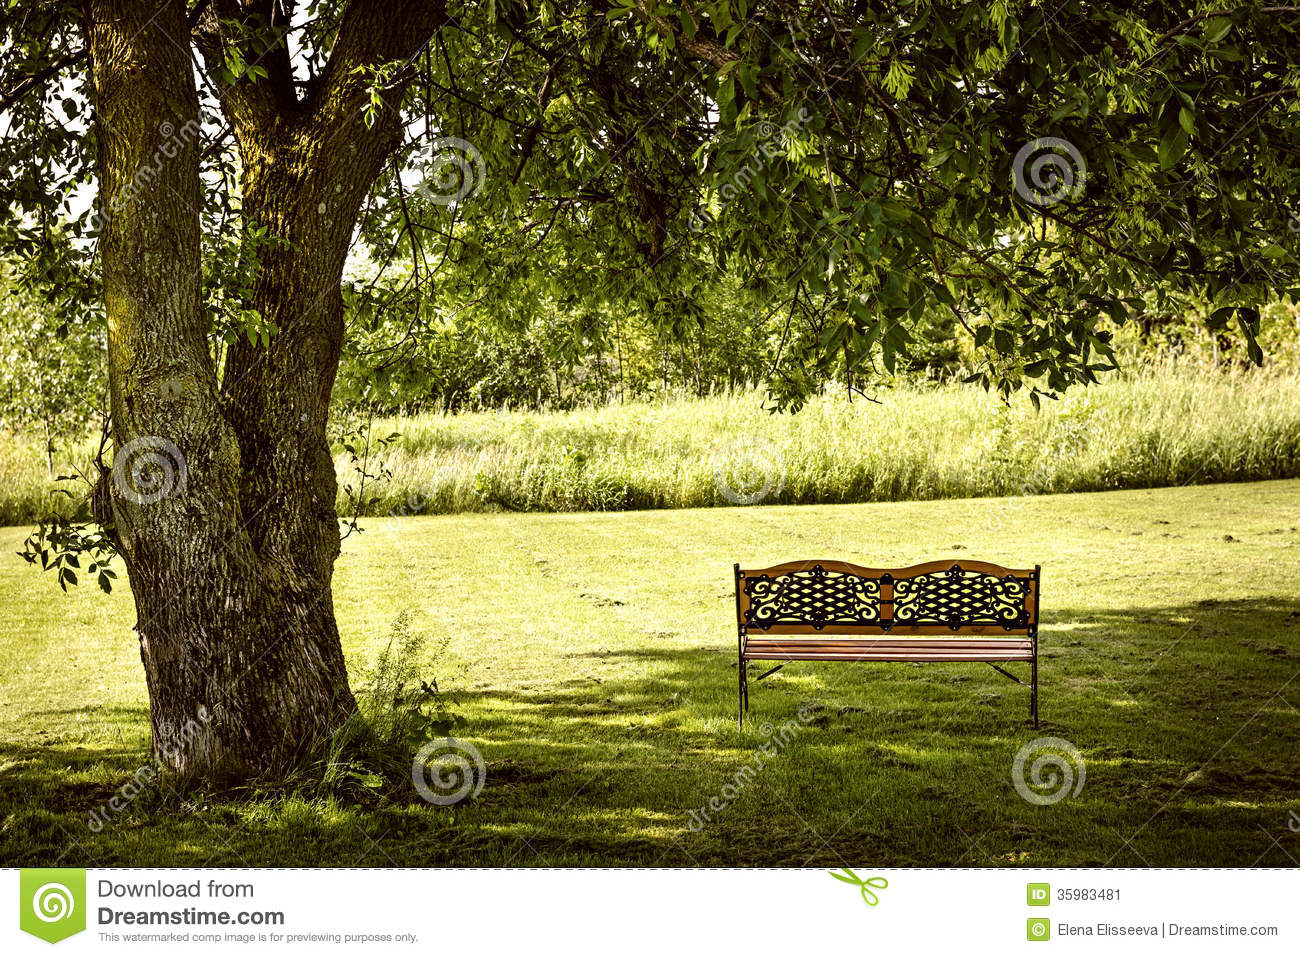 Park Bench Under Tree Stock Image - Image: 35983481